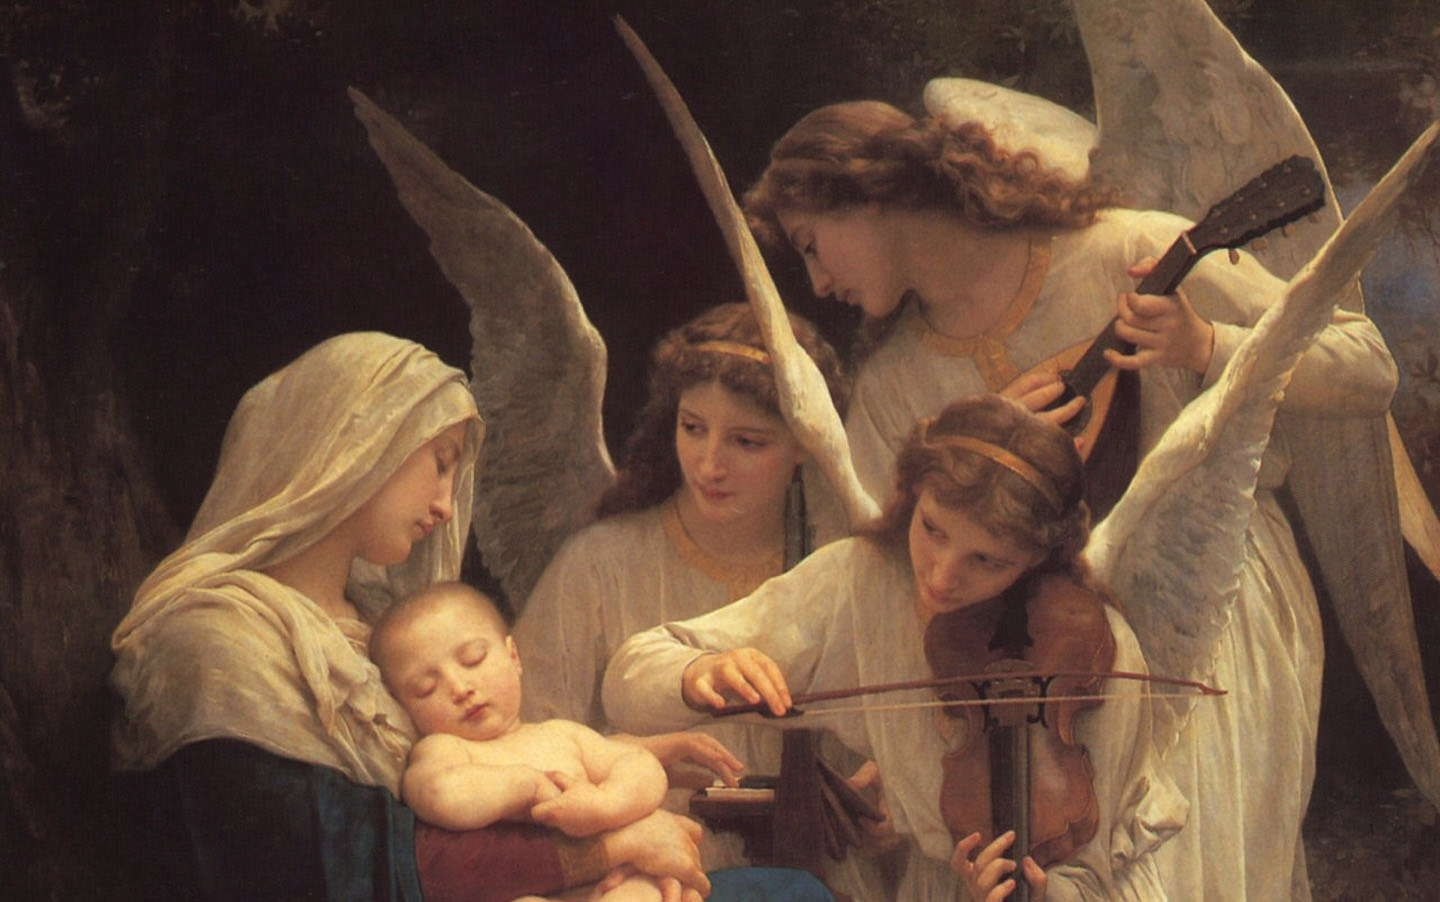 angels_paintings_william_adolphe_bouguereau_song_realistic_1440x902_wallpaper_Wallpaper_1440x902_www.wallpaperswa.com